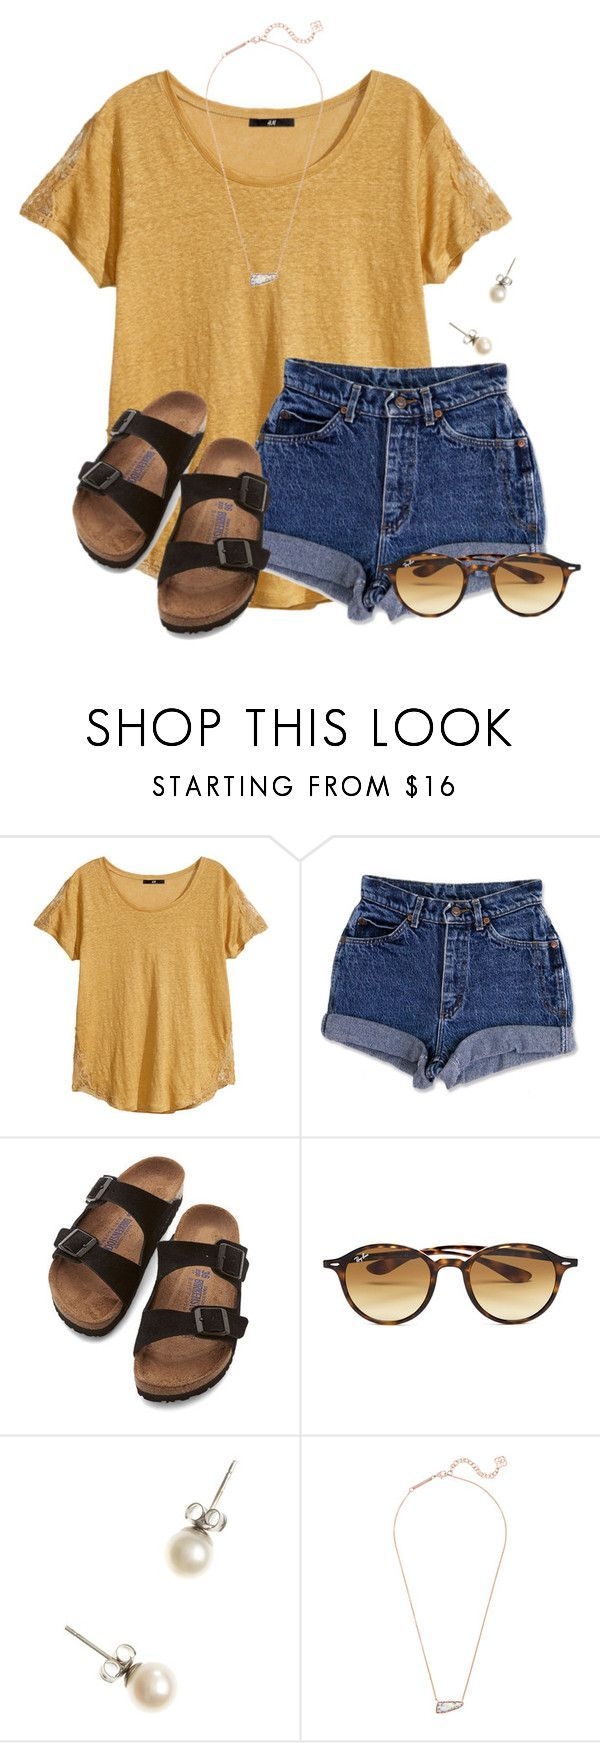 """""""QOTD: What are you doing for Valentine's Day?"""" by flroasburn ❤ liked on Polyvore featuring H&M, Birkenstock, Ray-Ban, J.Crew and Kendra Scott"""